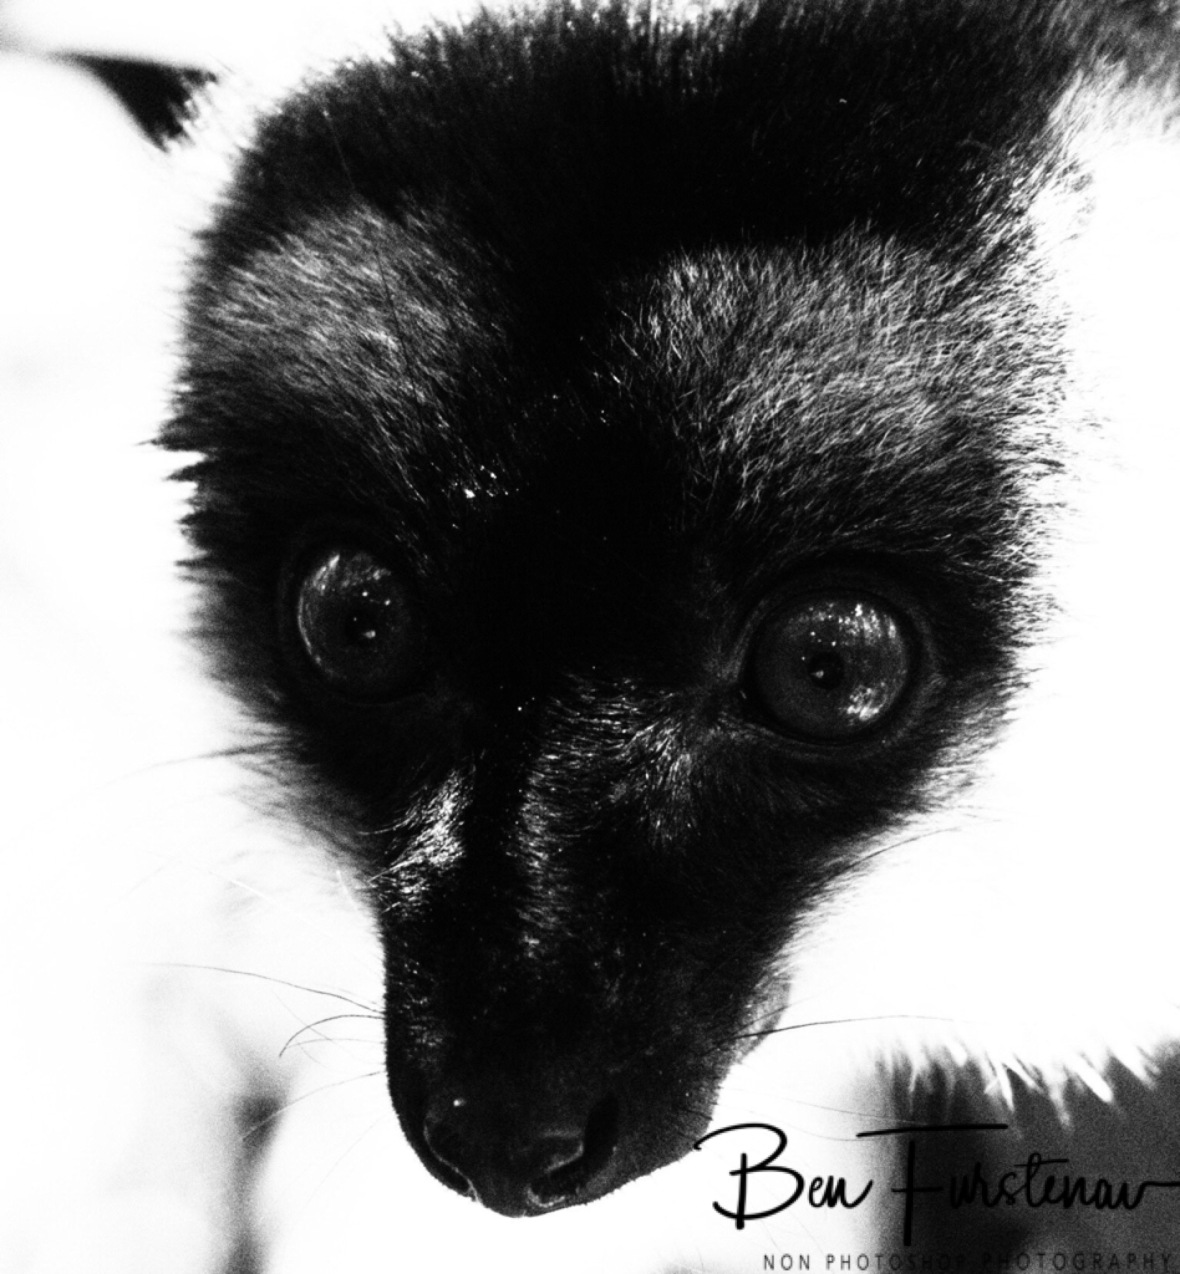 Common Brown Lemur in black and white